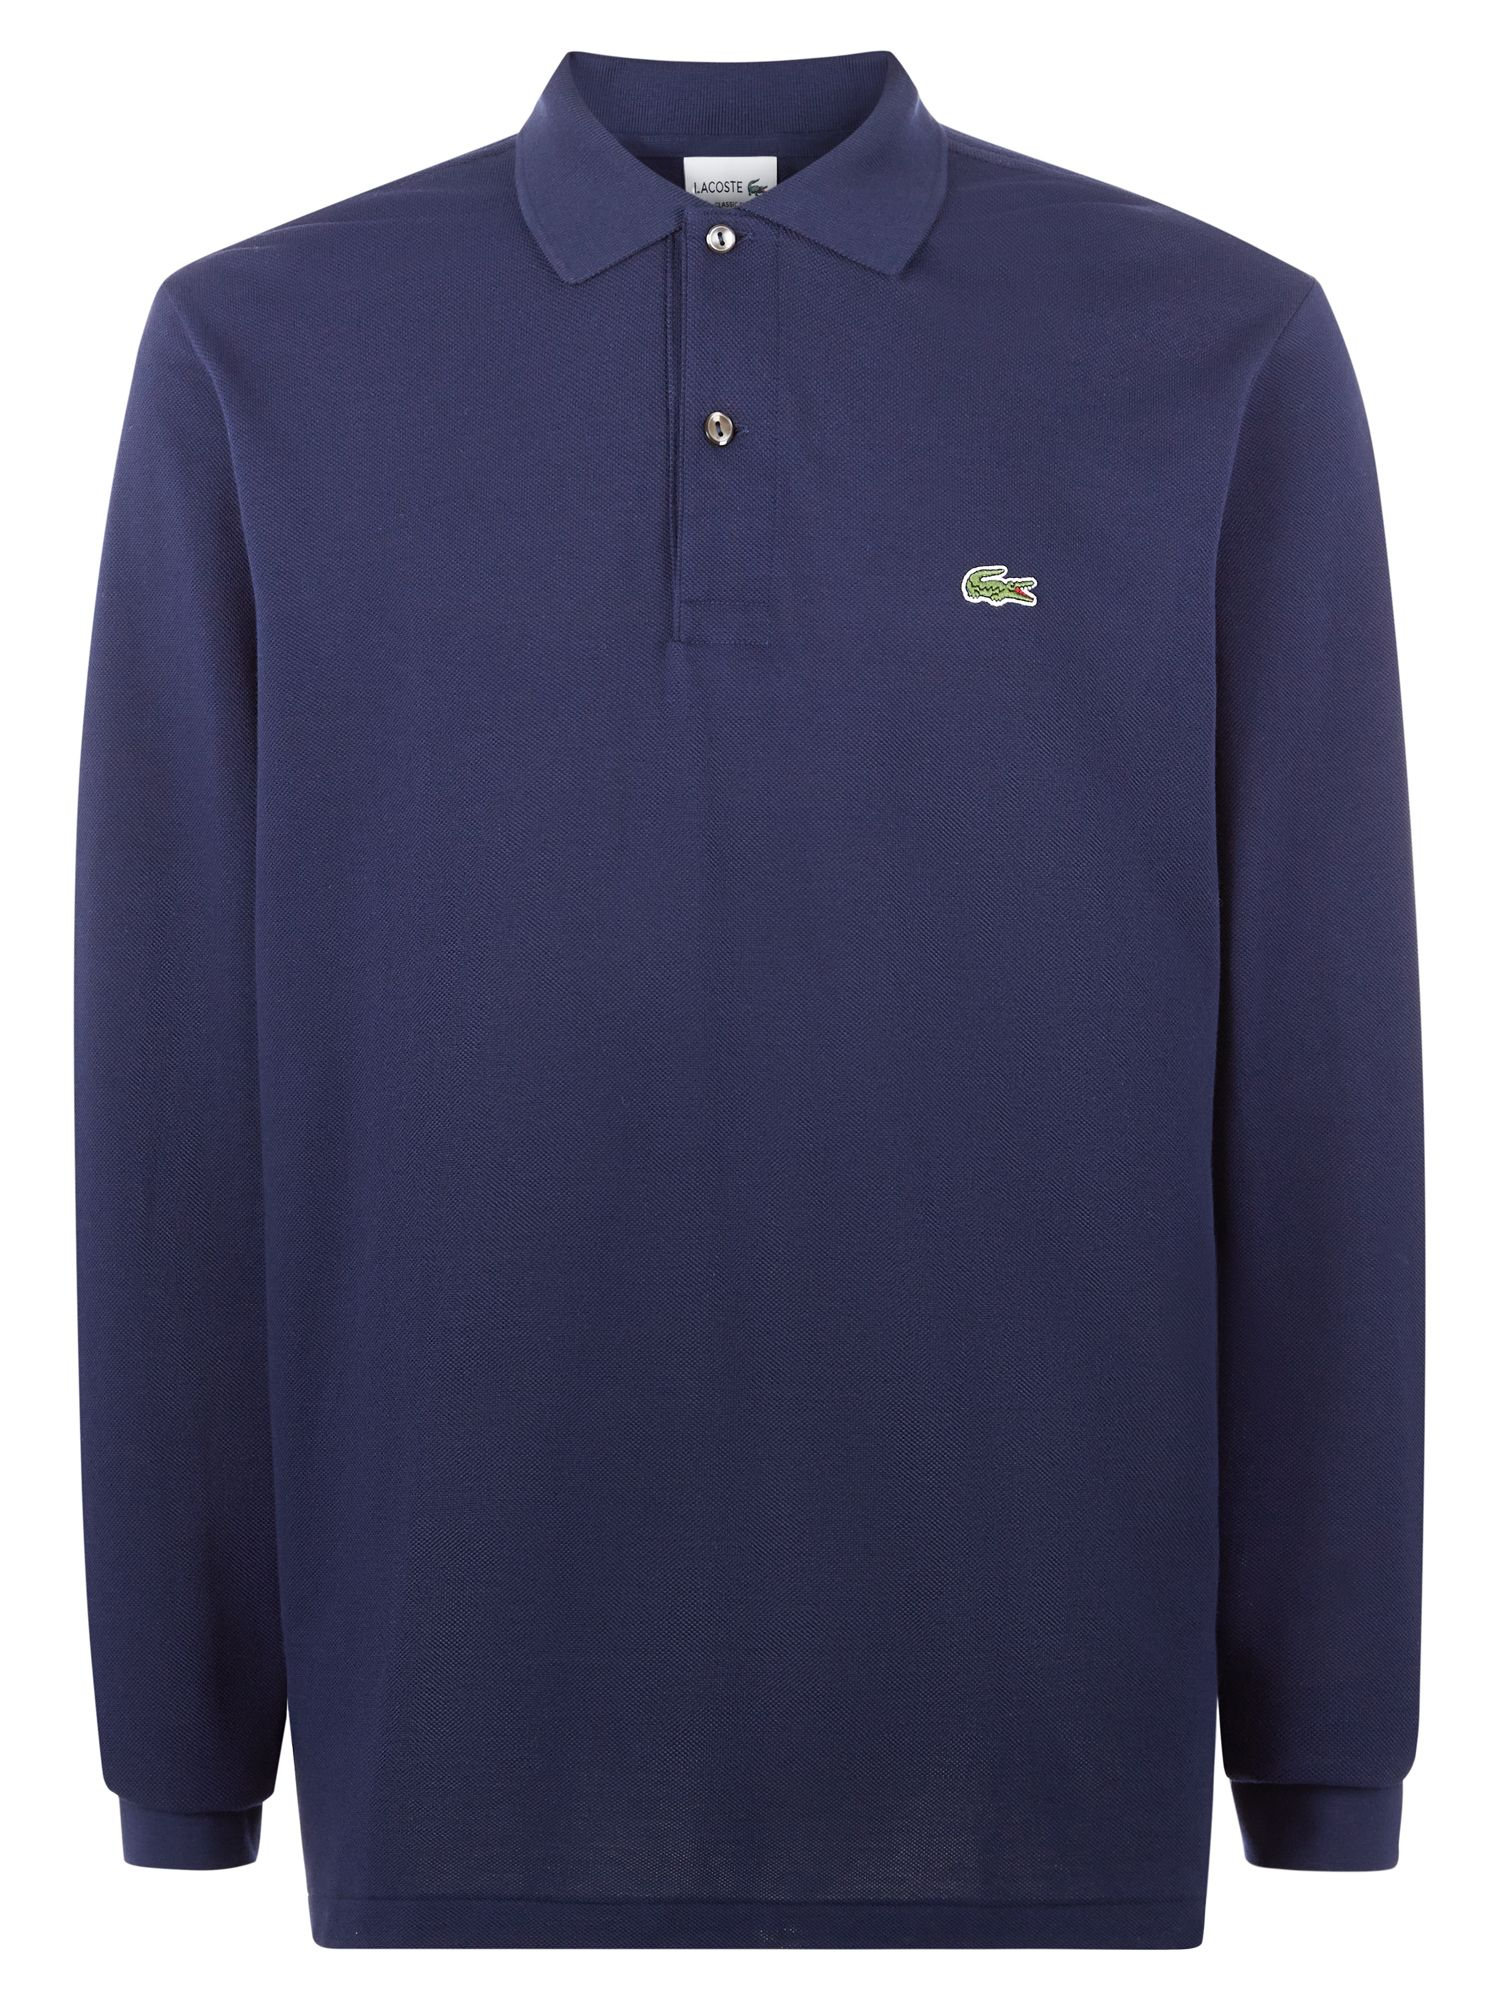 Men's Lacoste Lacoste Long Sleeve L.12.12 Polo, Blue